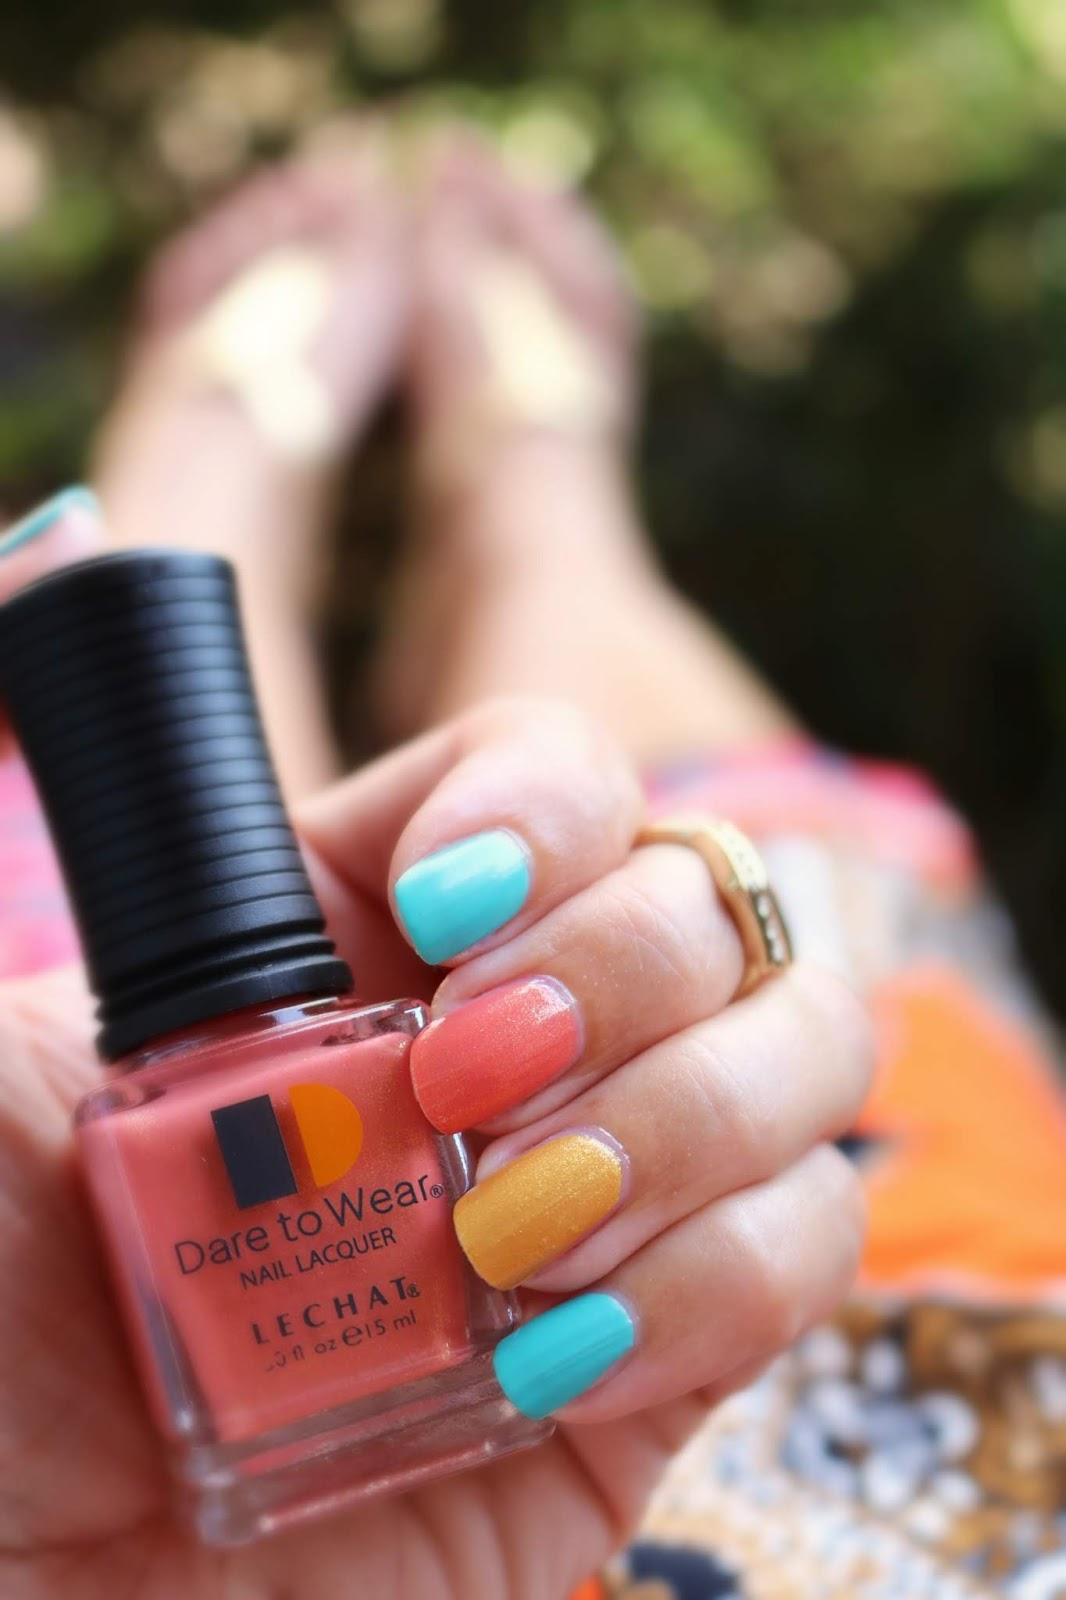 BEST SUMMER NAIL COLORS by Lechat #IndieFest